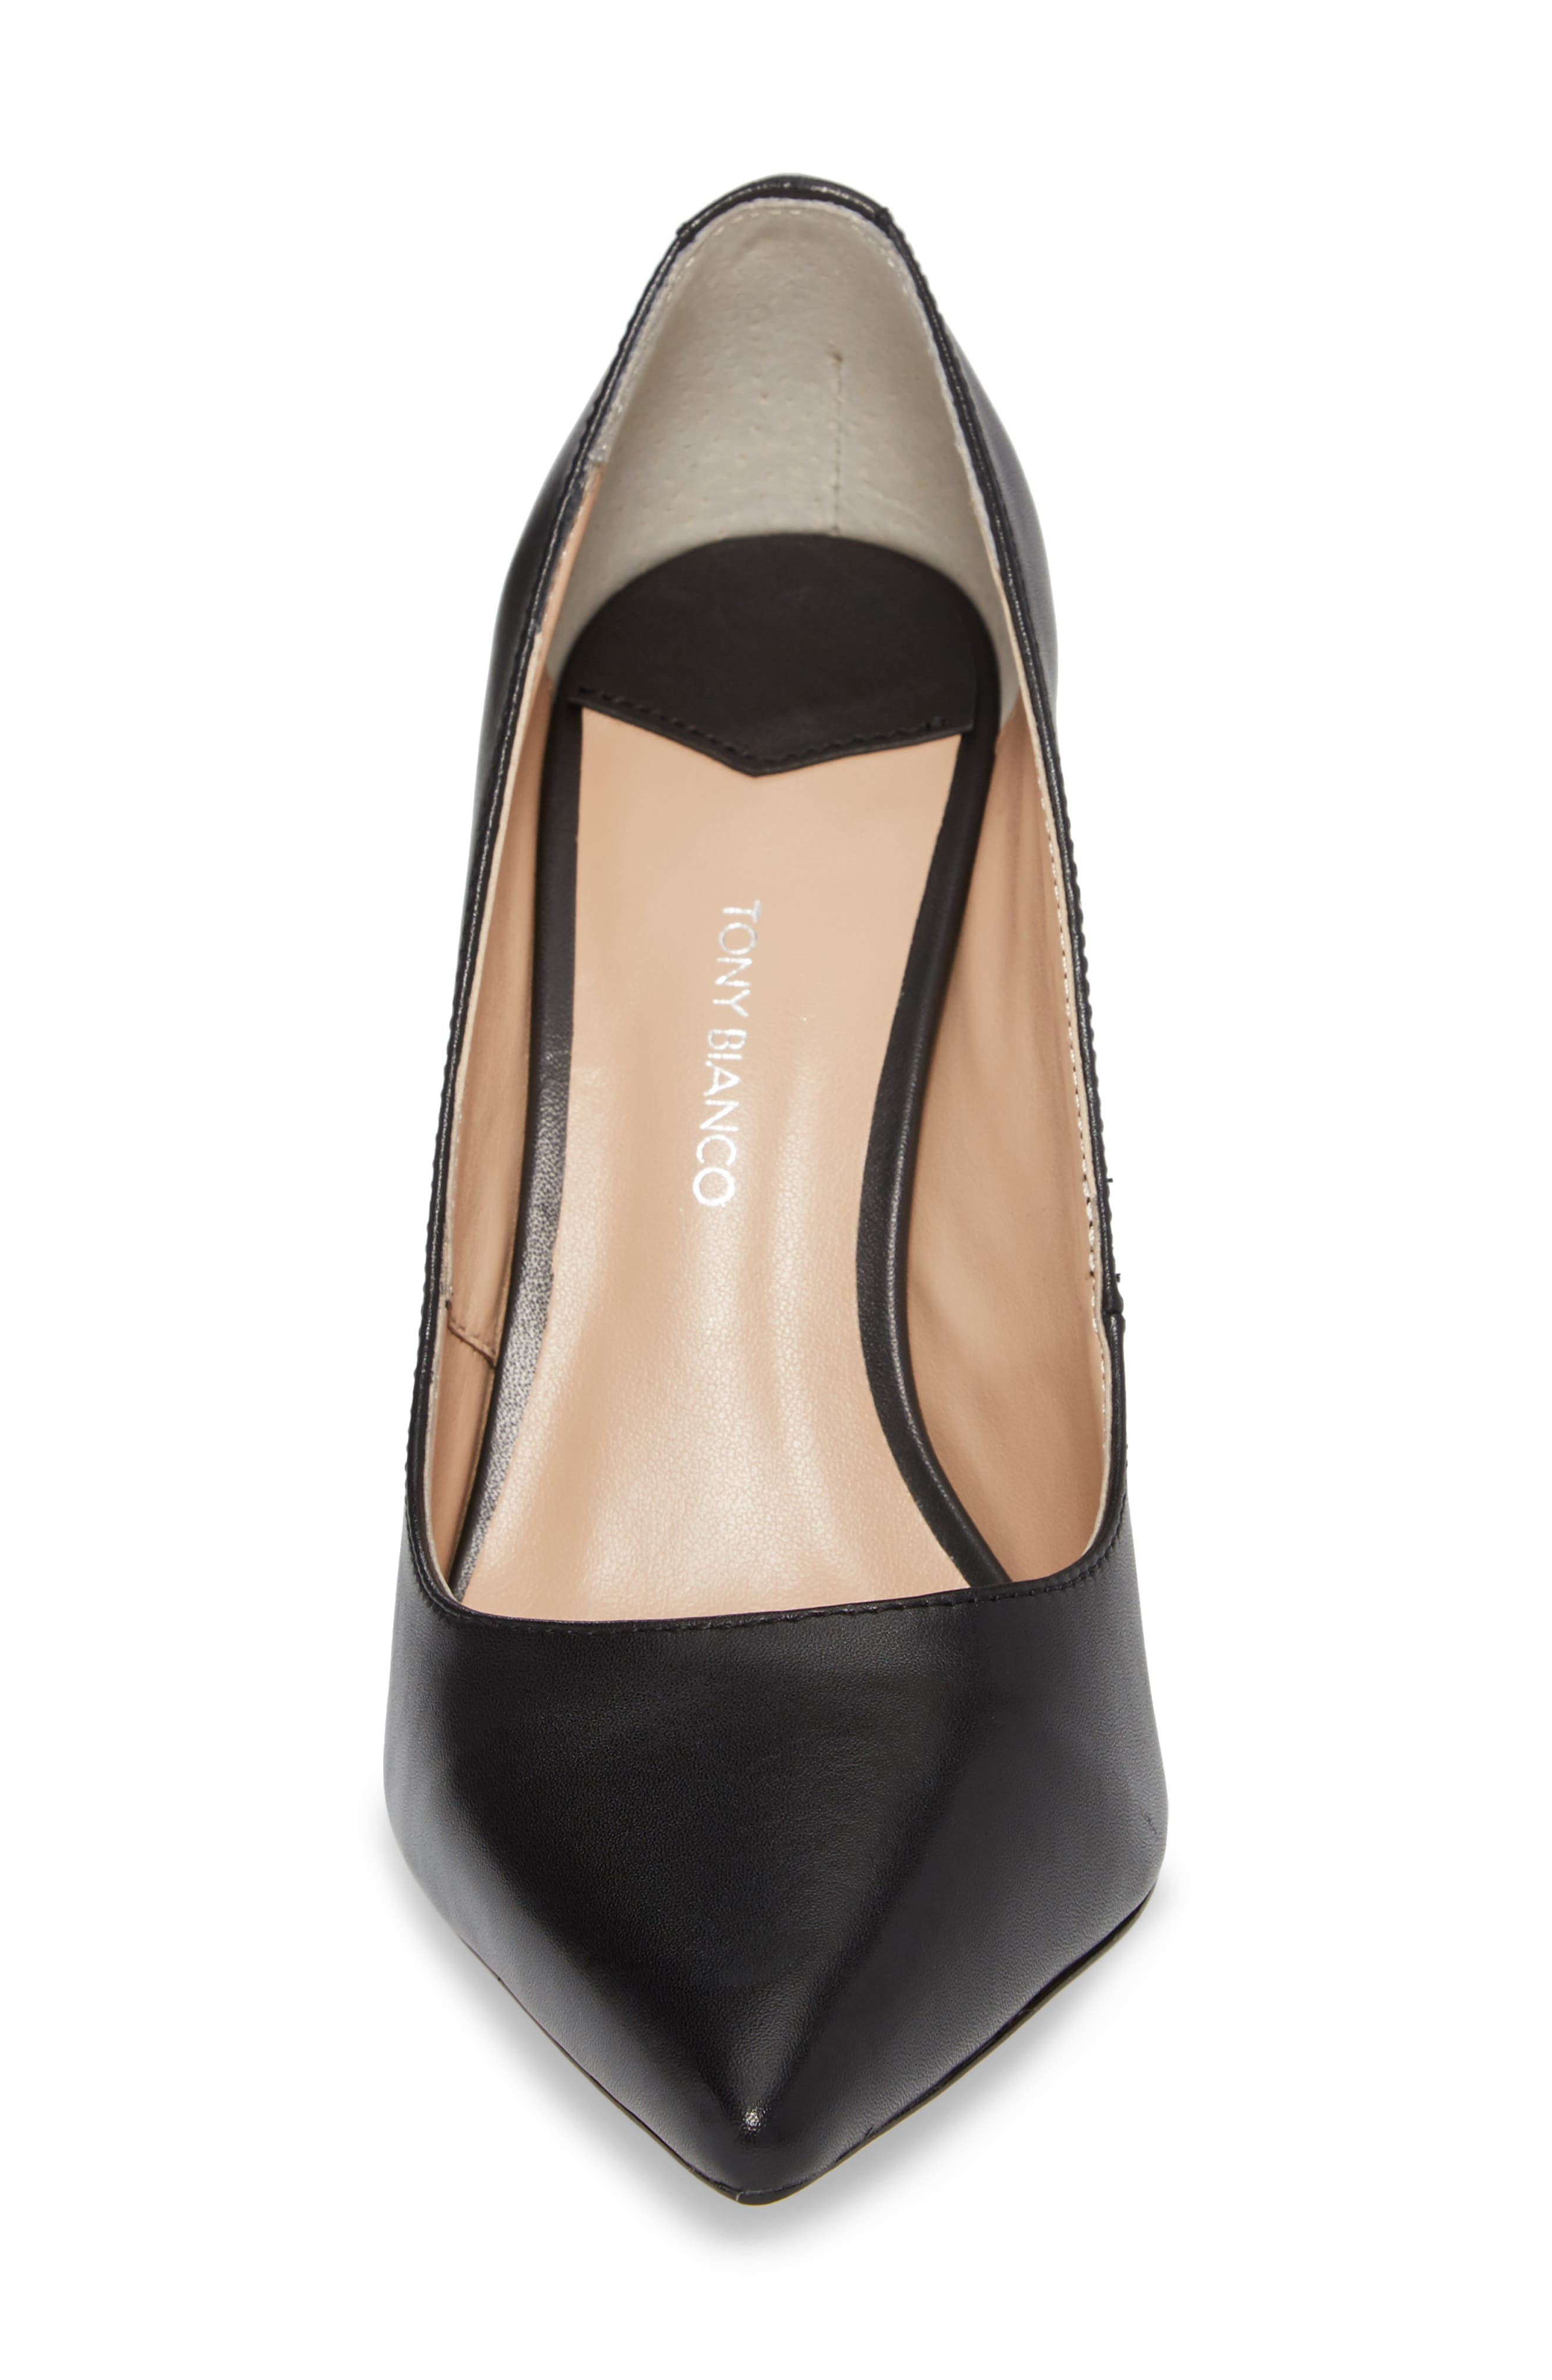 TONY BIANCO, Lotus Pointy Toe Pump, Alternate thumbnail 4, color, 001